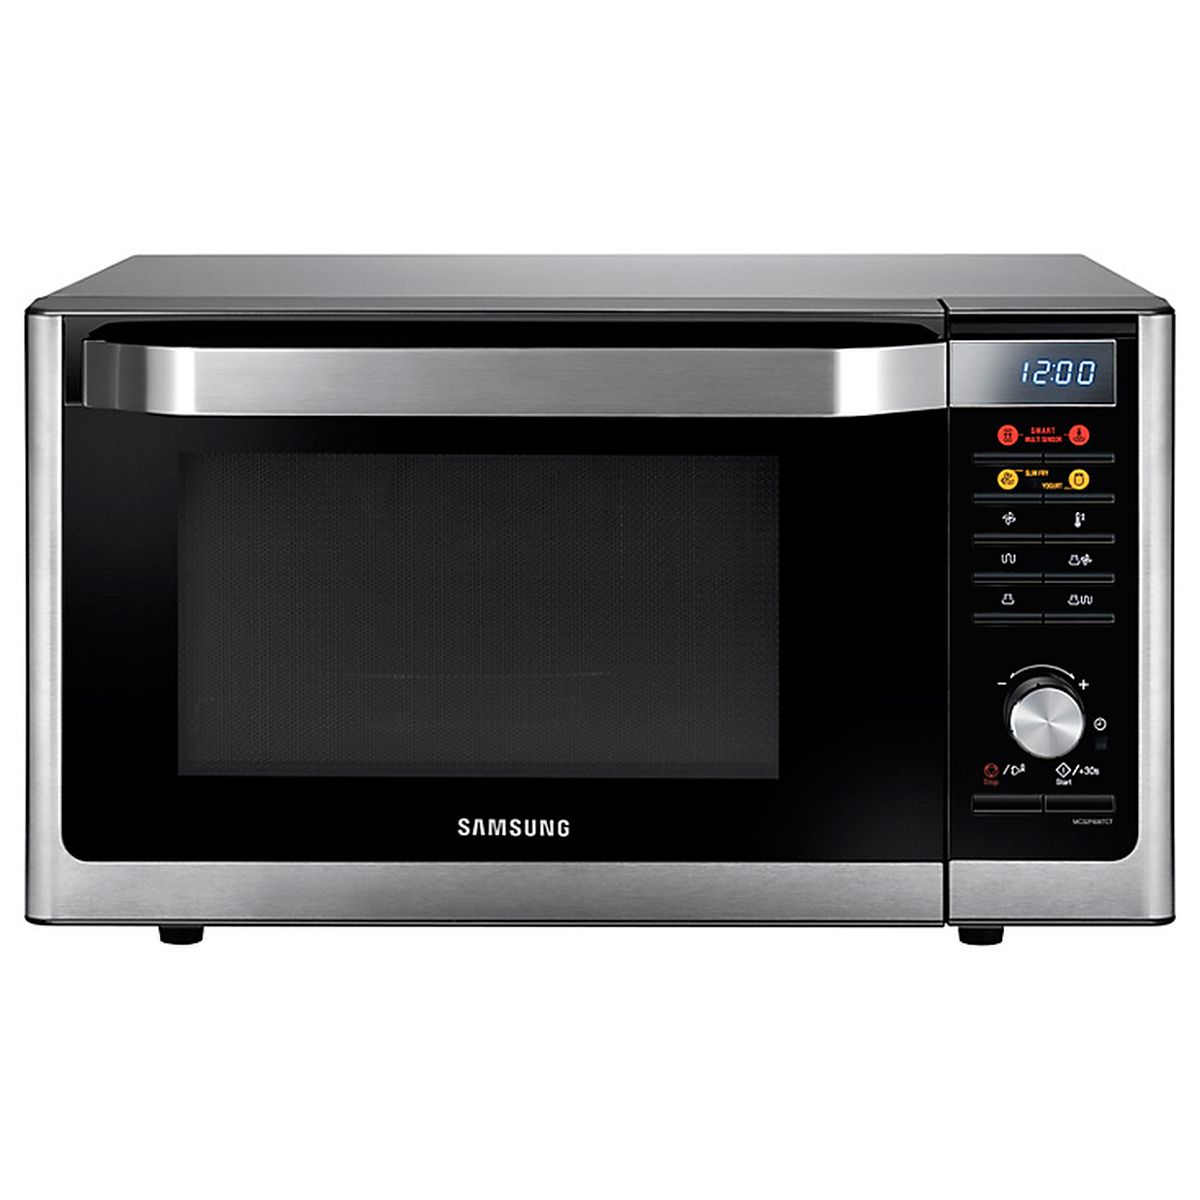 Best Convection Microwave 2015 Review